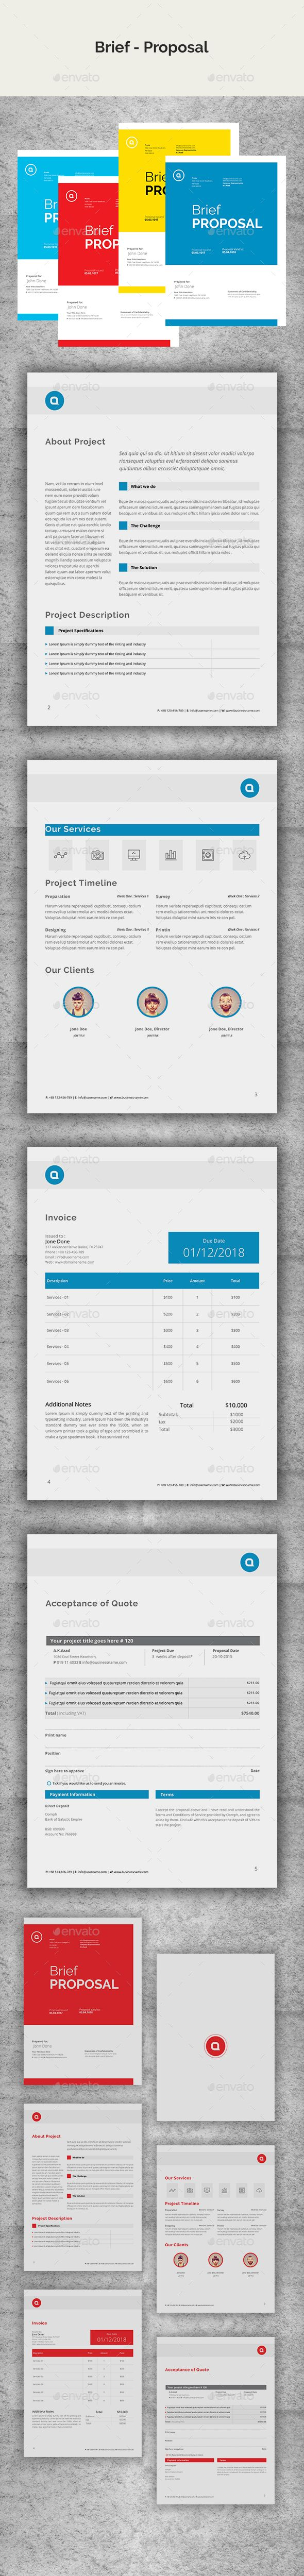 Brief Proposal by azadcsstune Brief Proposal InDesign Features Used ...